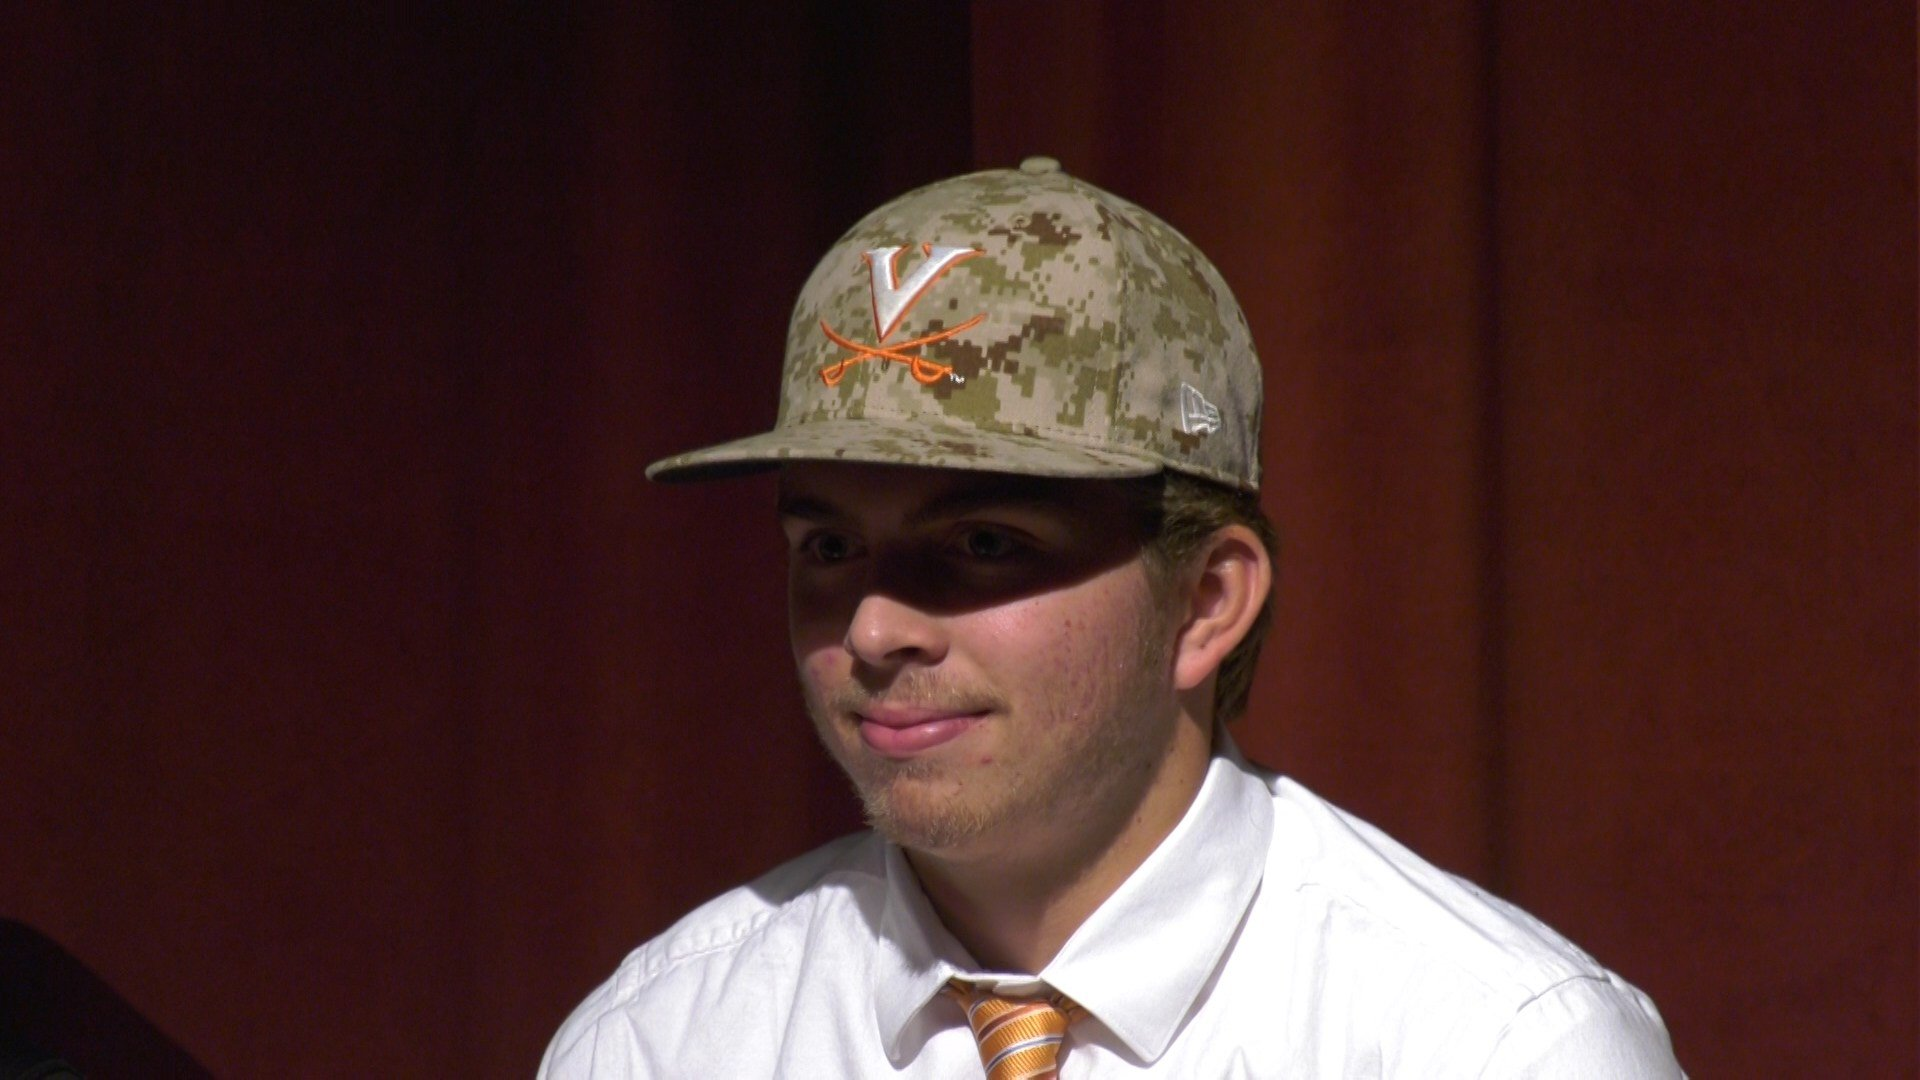 Nic Kent signed to play baseball at the University of Virginia